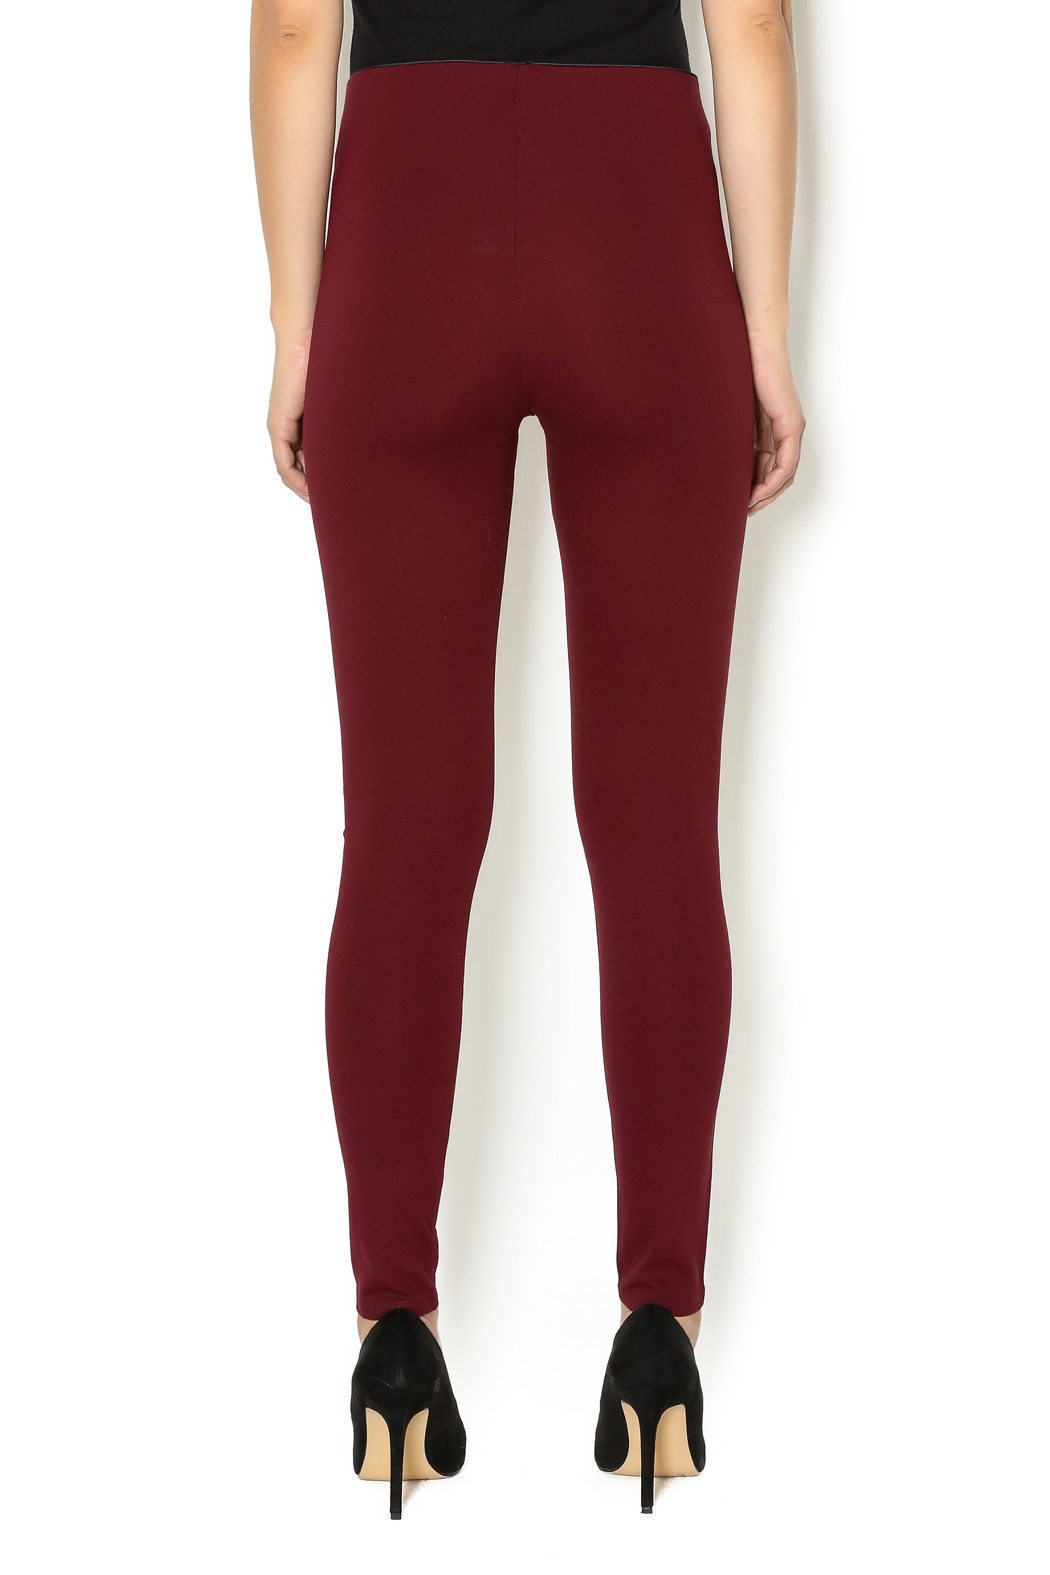 Love Tree Wine Leggings from Houston by Heiress Boutique u2014 Shoptiques